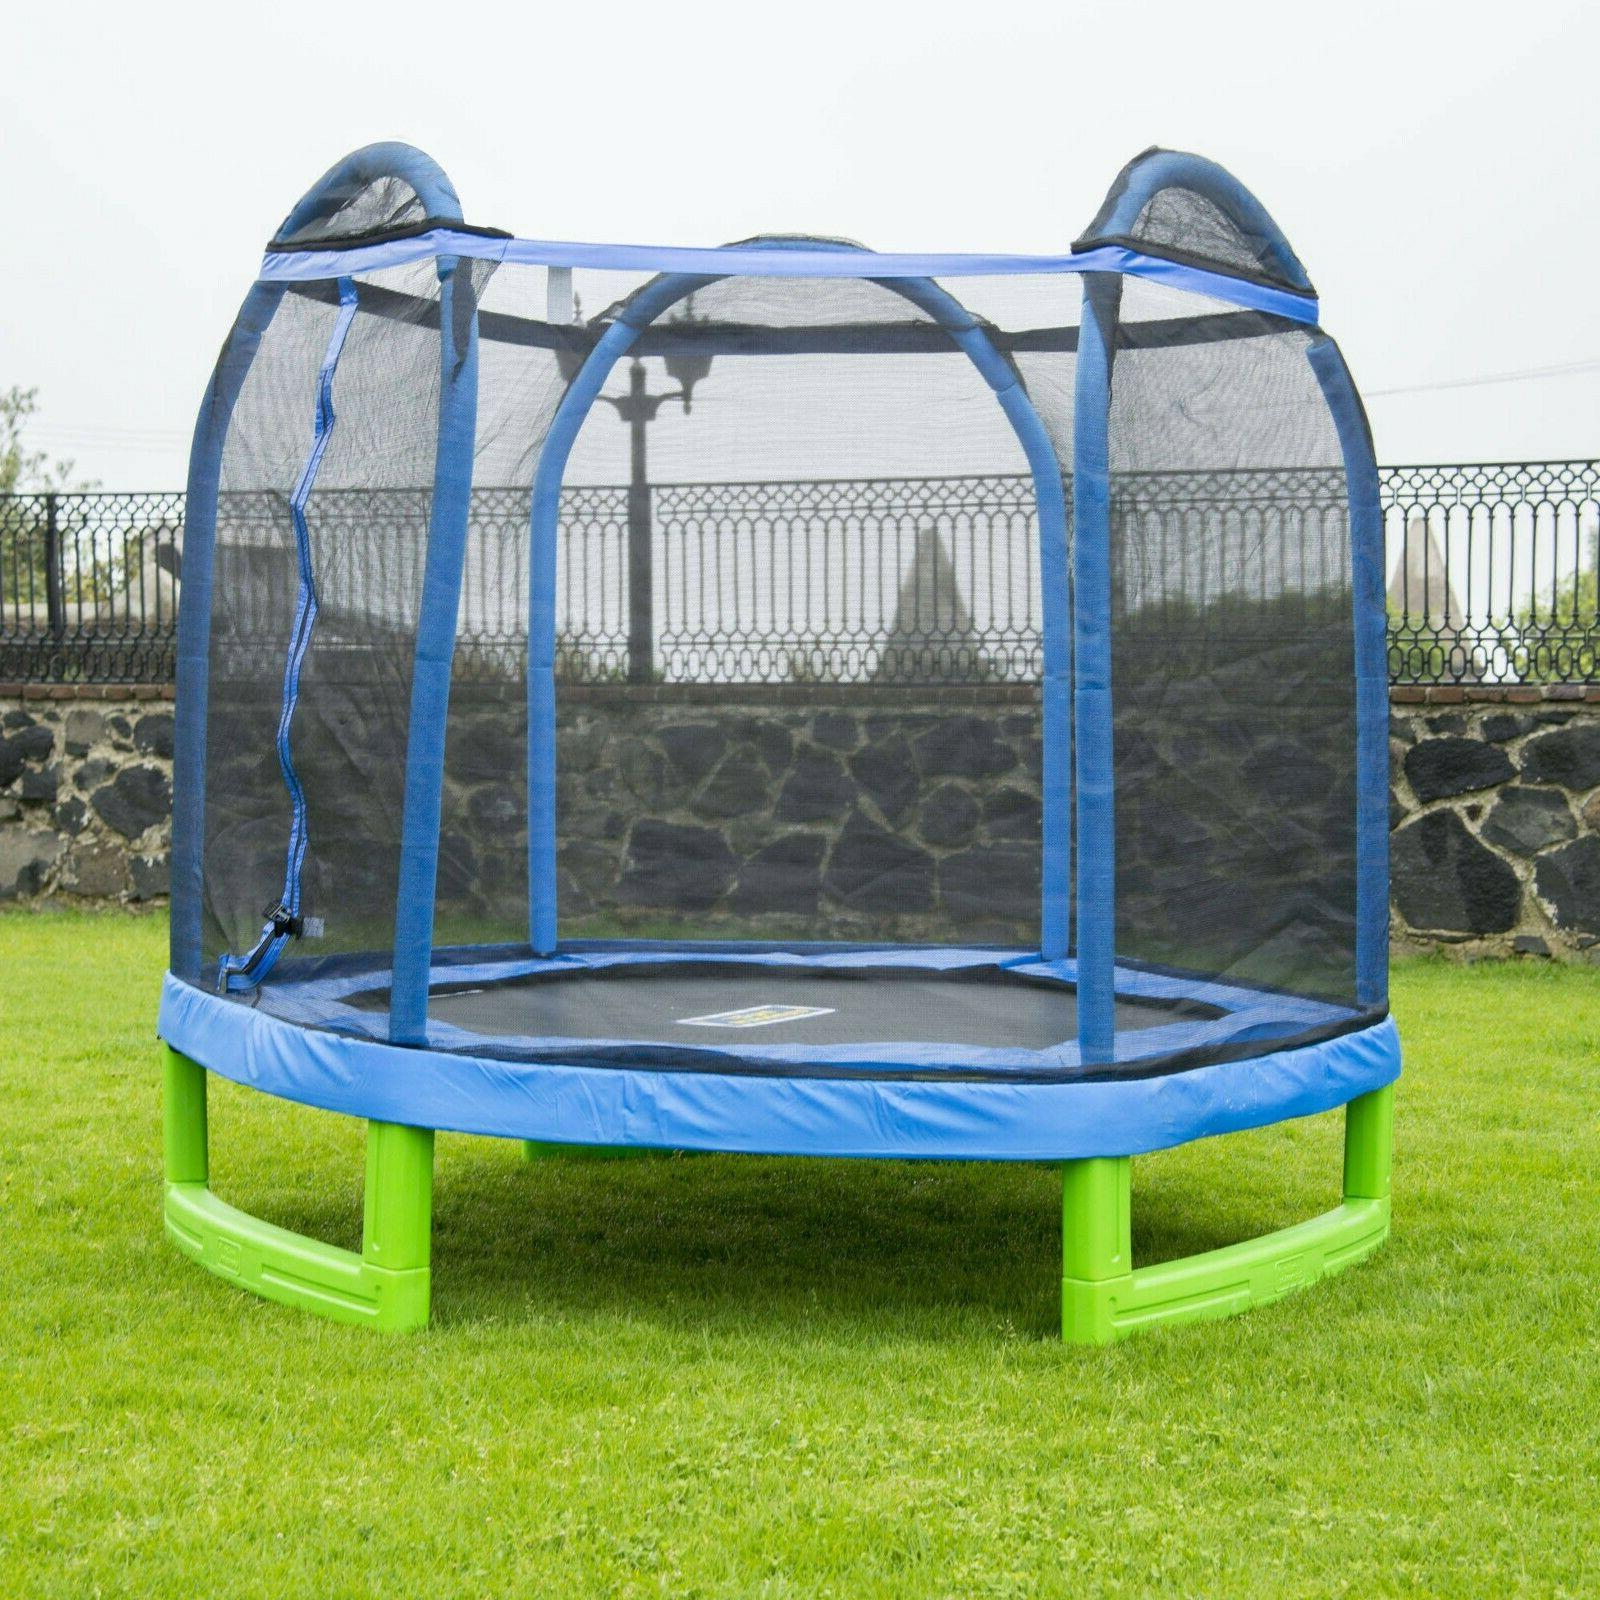 Bounce Pro 7 Foot My First Trampoline Hexagon  For Kids, Blu